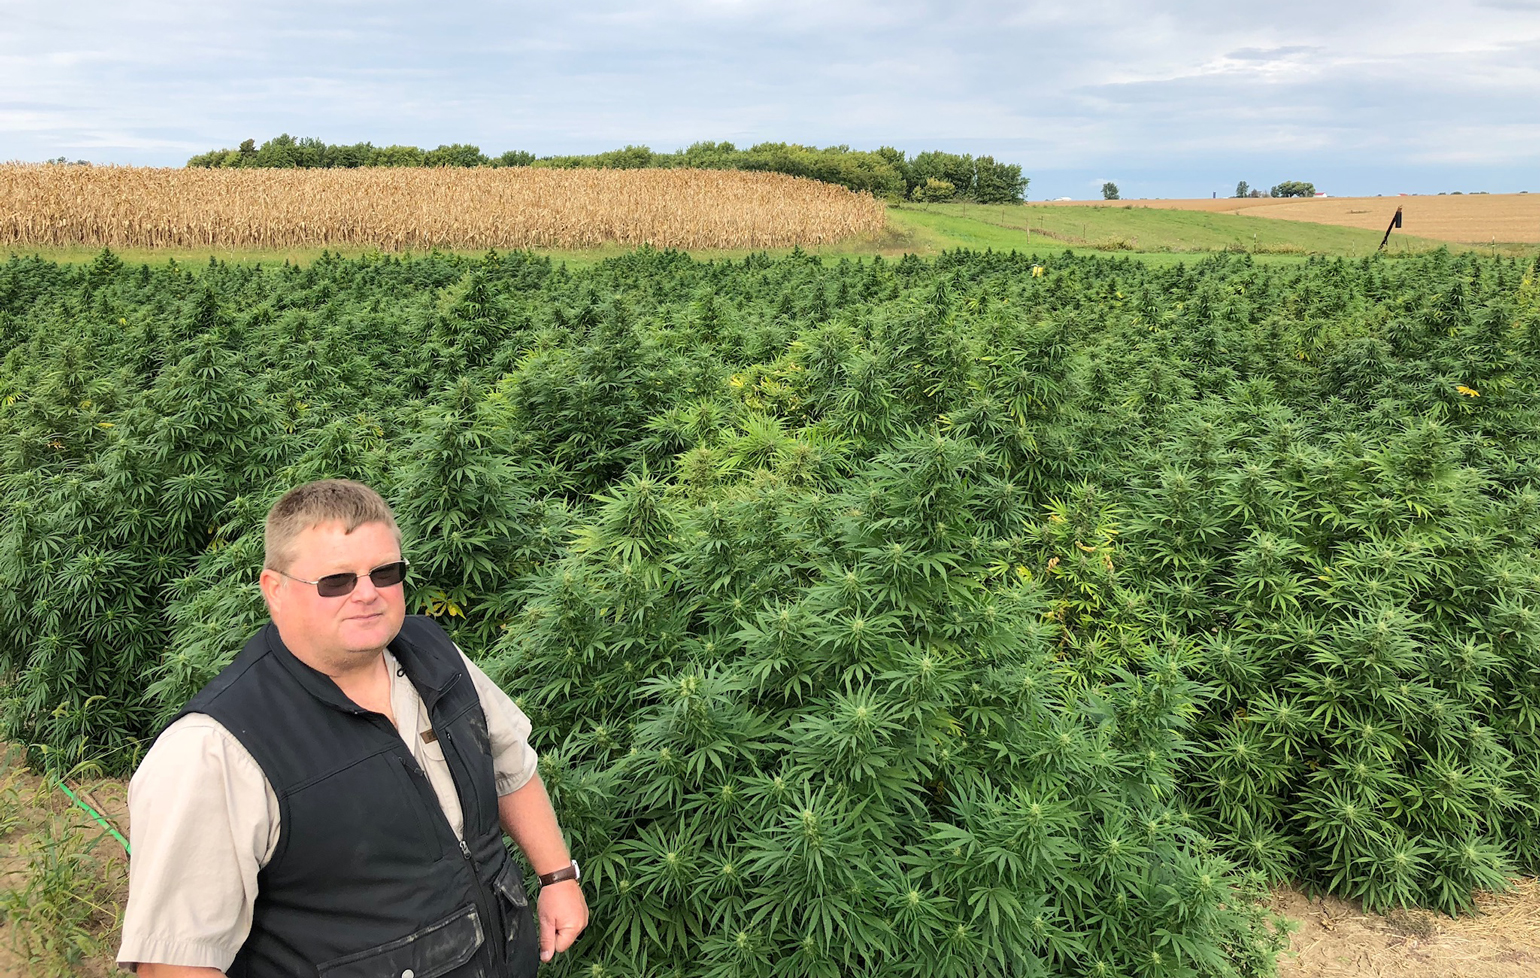 Andy Huston standing in hemp field